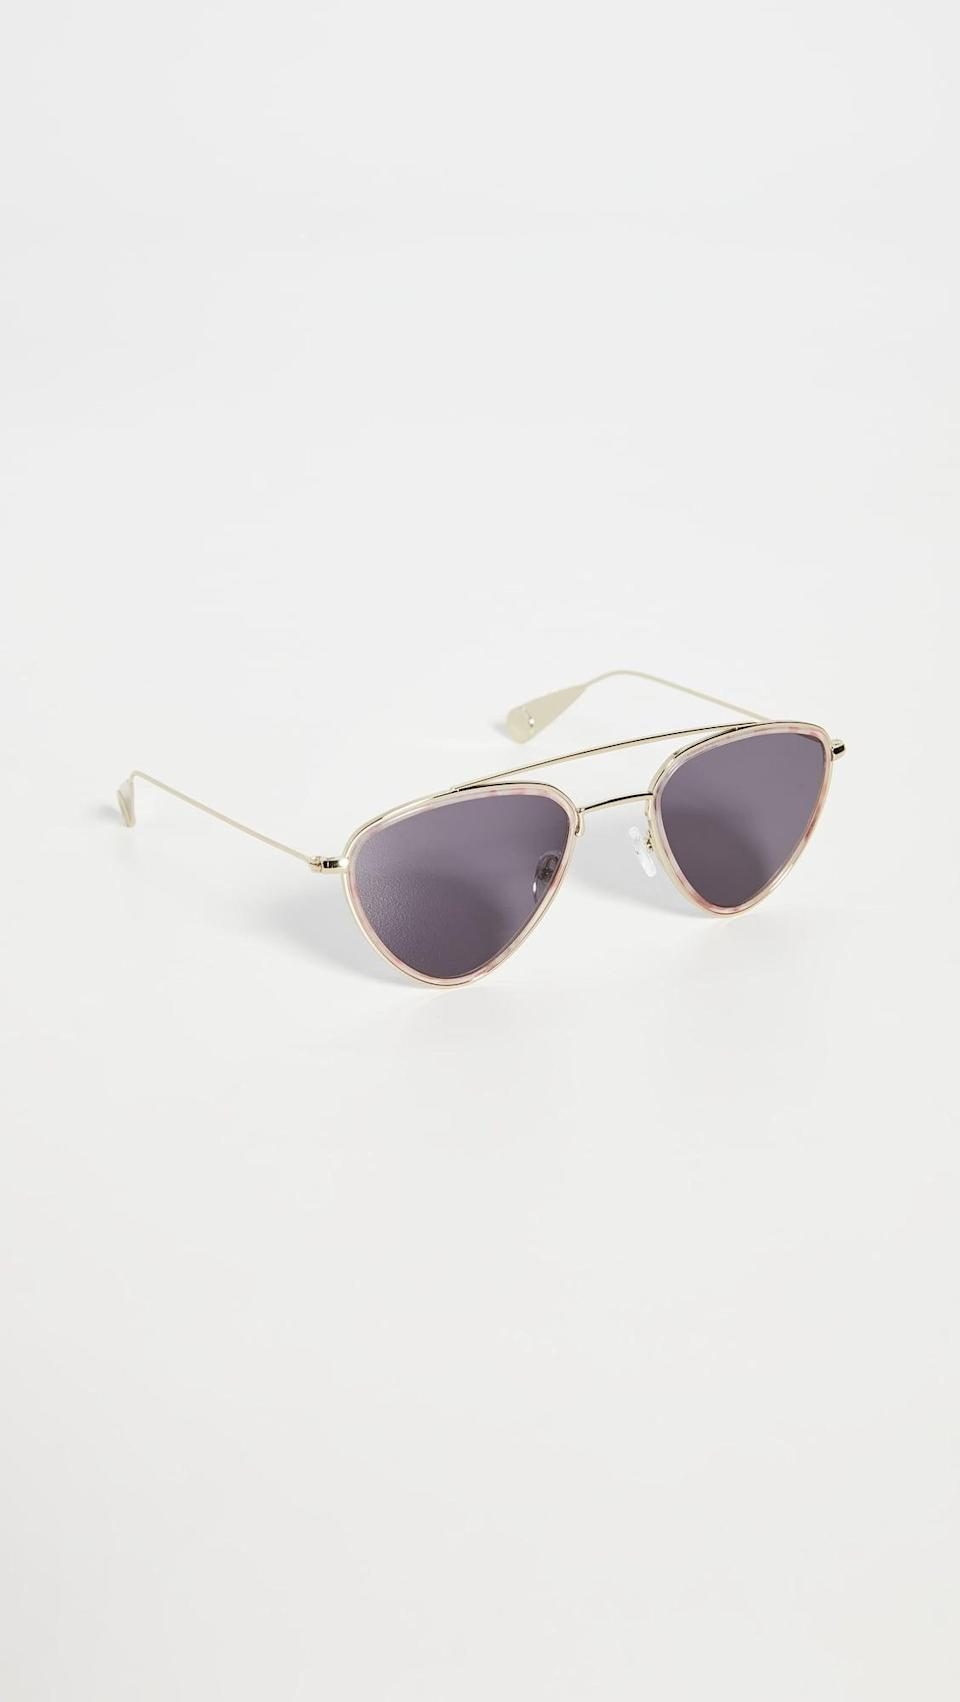 <p>These <span>Lyndon Leone Biscayne R Sunglasses</span> ($60) look sleek and modern.</p>